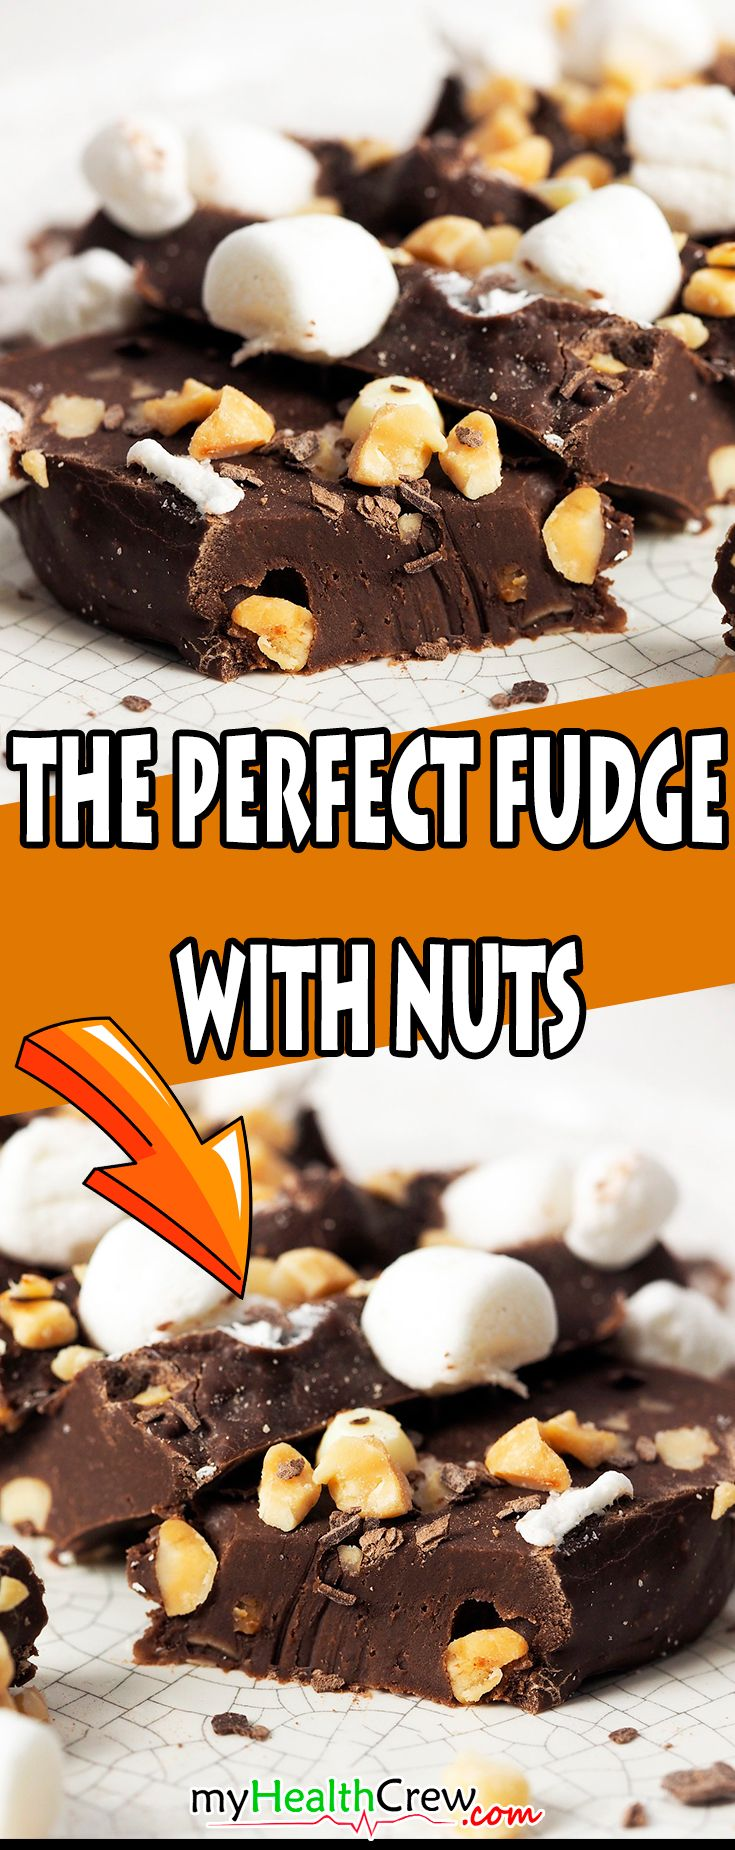 The perfect chocolate fudge with nuts